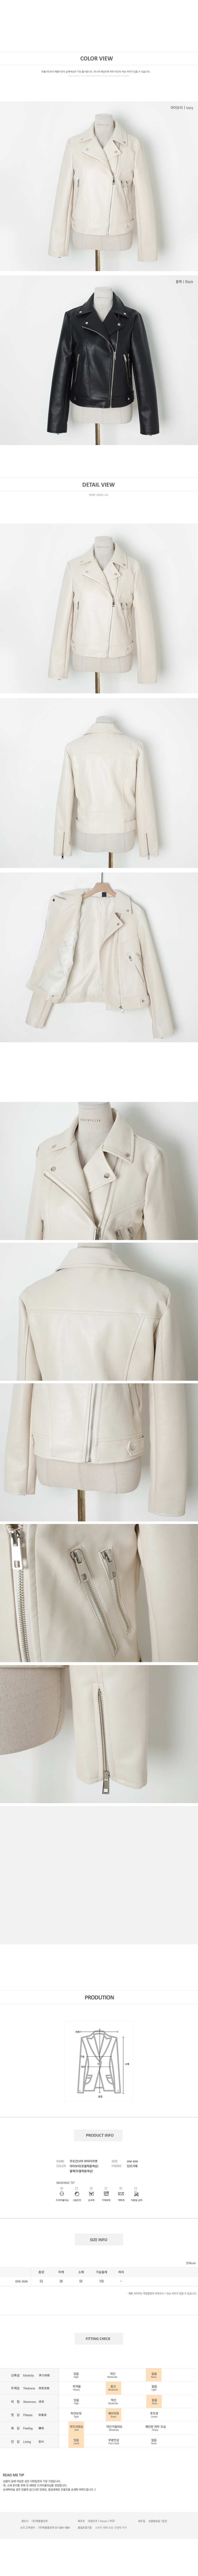 Ridiculous jacket with no anxiety